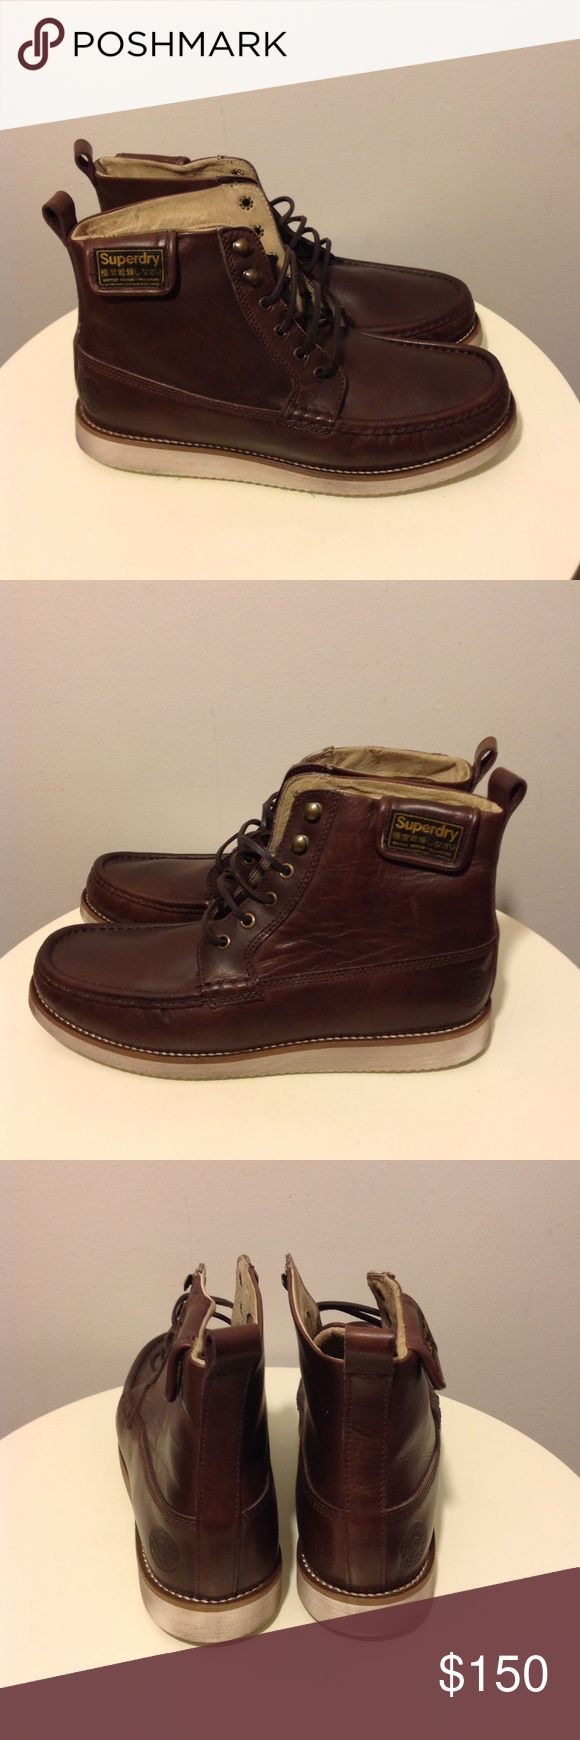 Superdry Leather Trapper Boots Men's Sz 10/44 Great pre-owned condition  Leather ankle boots in brown Eyelet and speed lace fastening Fold over ankle patch with snaps Contrast manmade sole Embossed heel logo Men's size 10 US / EU 44 Superdry Shoes Chukka Boots